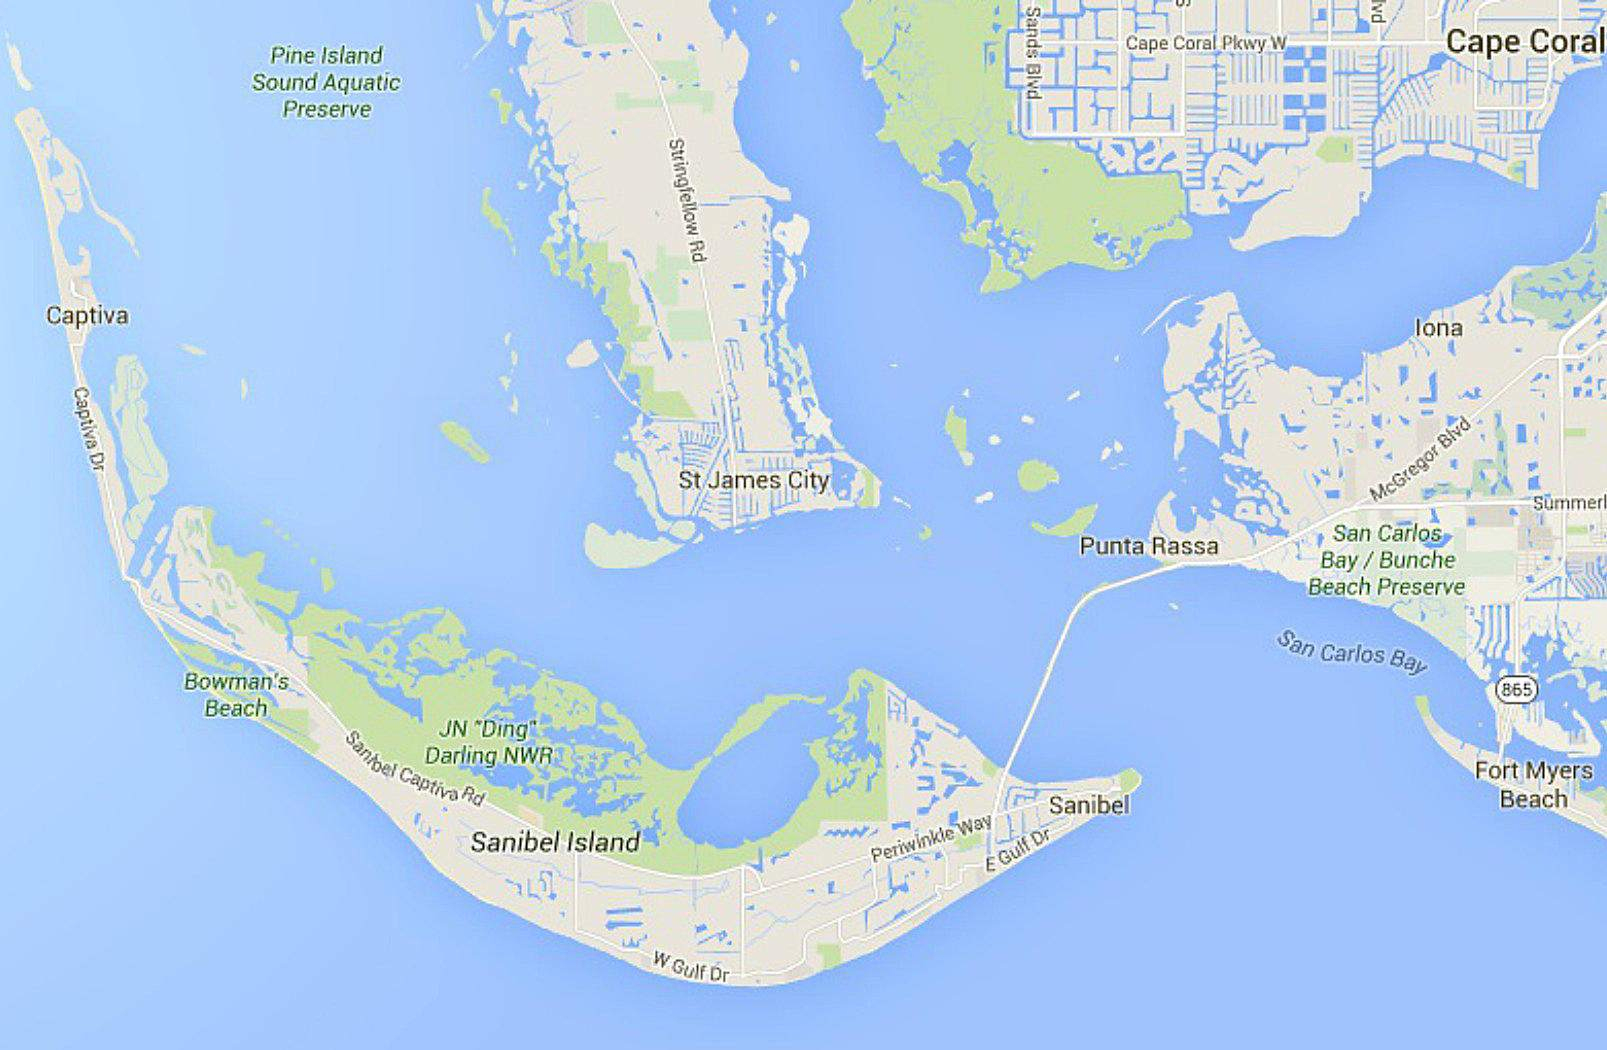 Maps Of Florida: Orlando, Tampa, Miami, Keys, And More - Map Of Beaches On The Gulf Side Of Florida